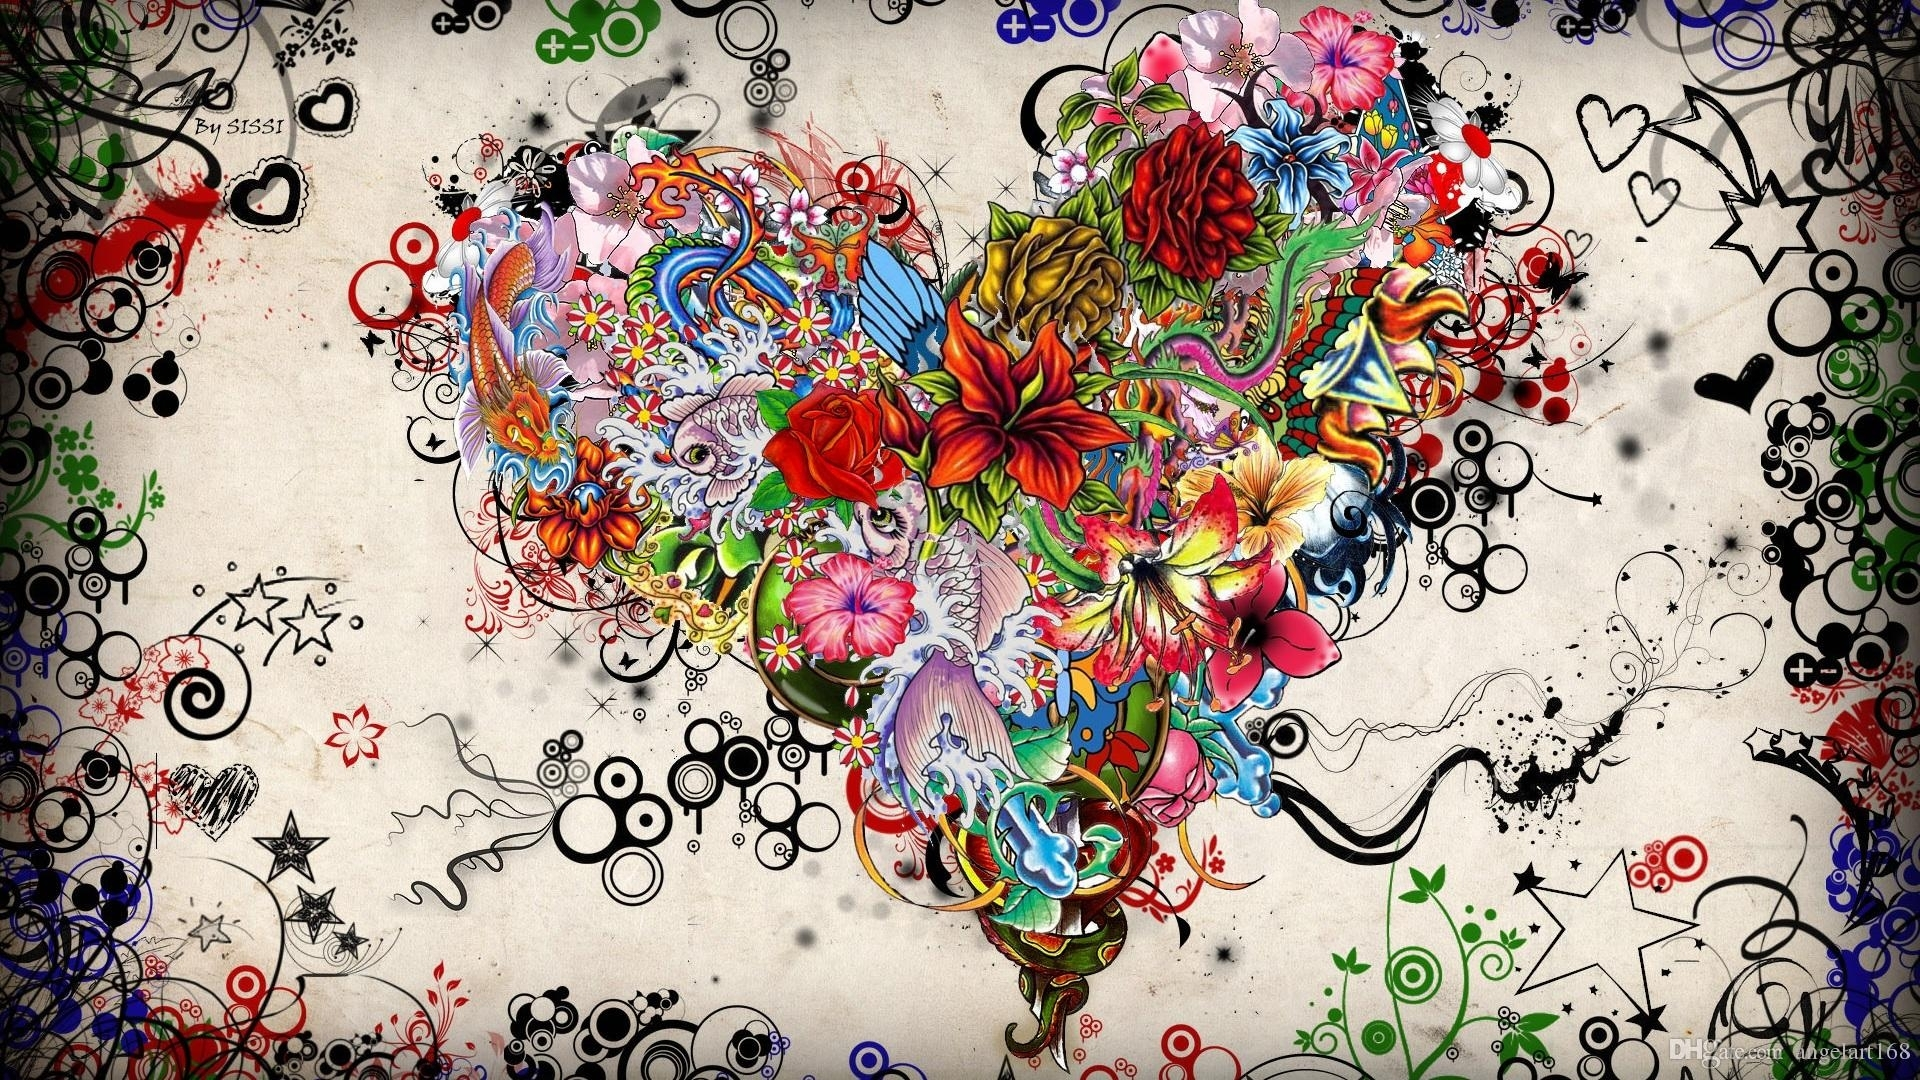 2018 Single Unframed Colourful Flower Abstract Heart Flower Pertaining To 2018 Abstract Heart Wall Art (View 5 of 20)